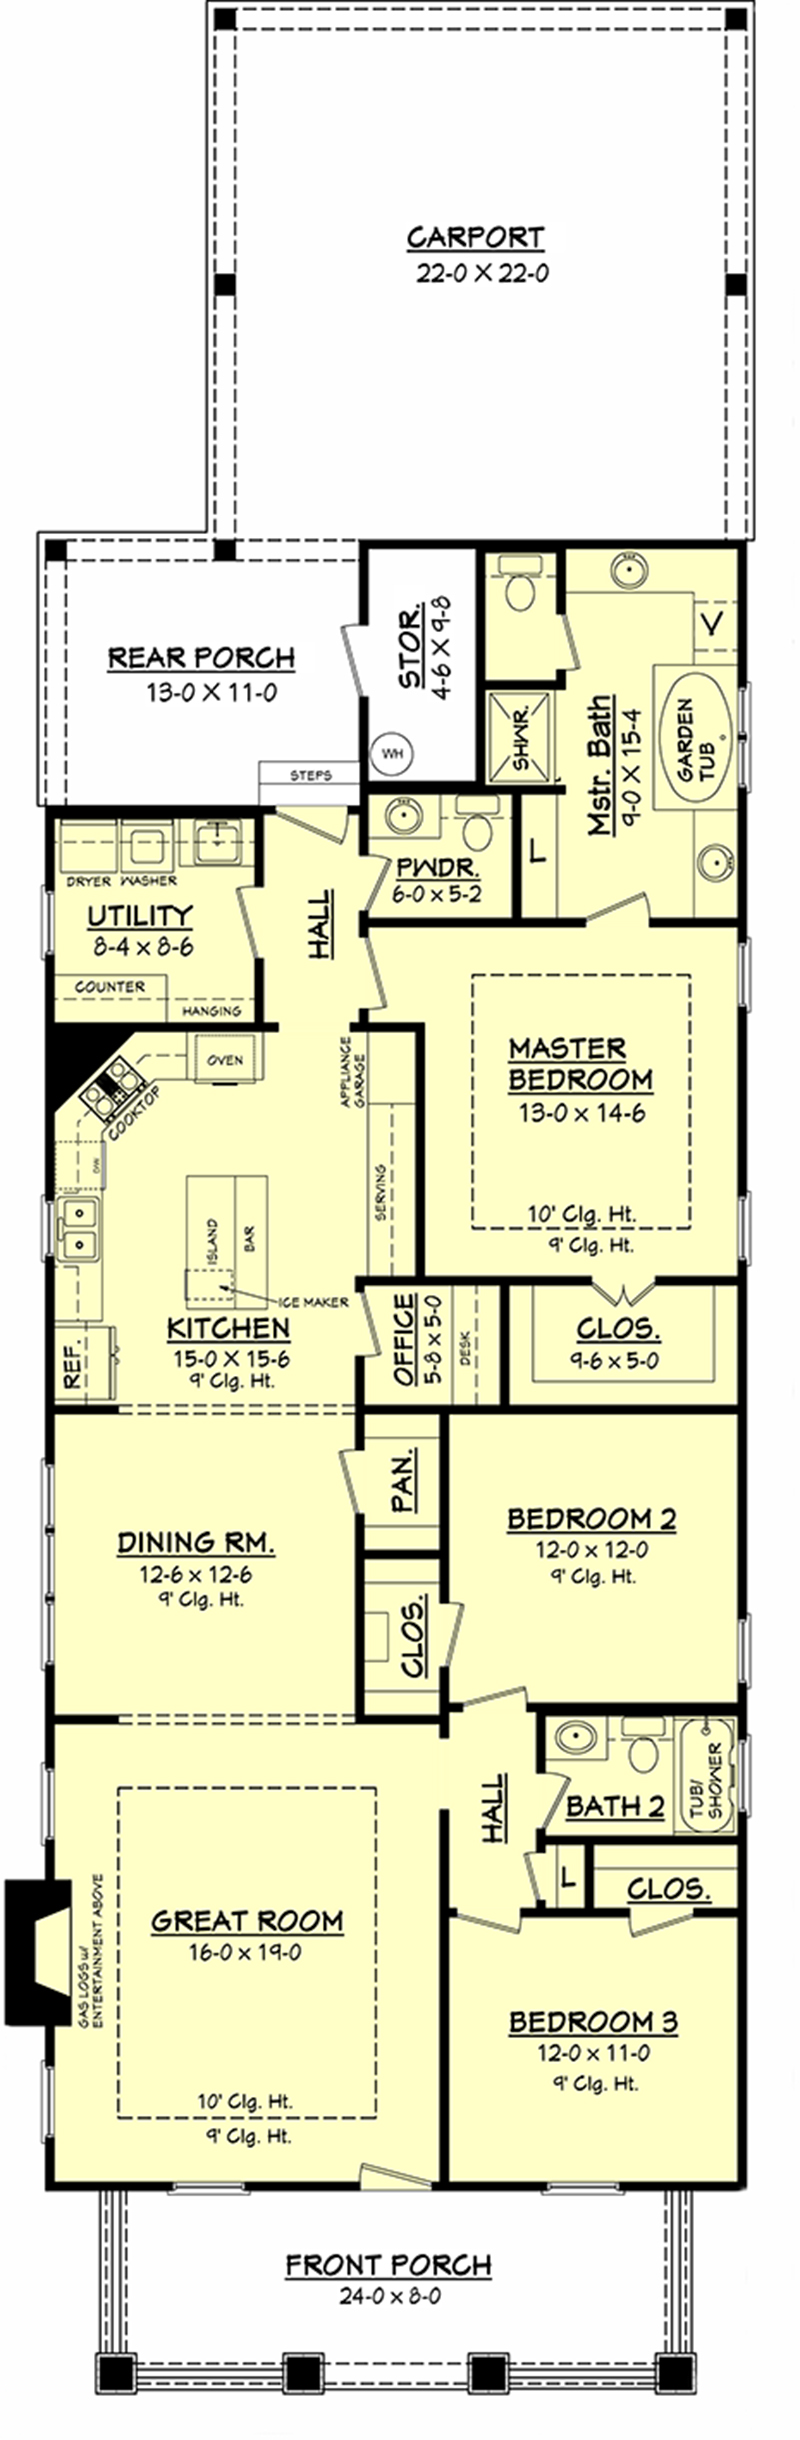 House plan 142 1079 3 bdrm 2 1 2 bath 1800 sq ft for Main level floor plans